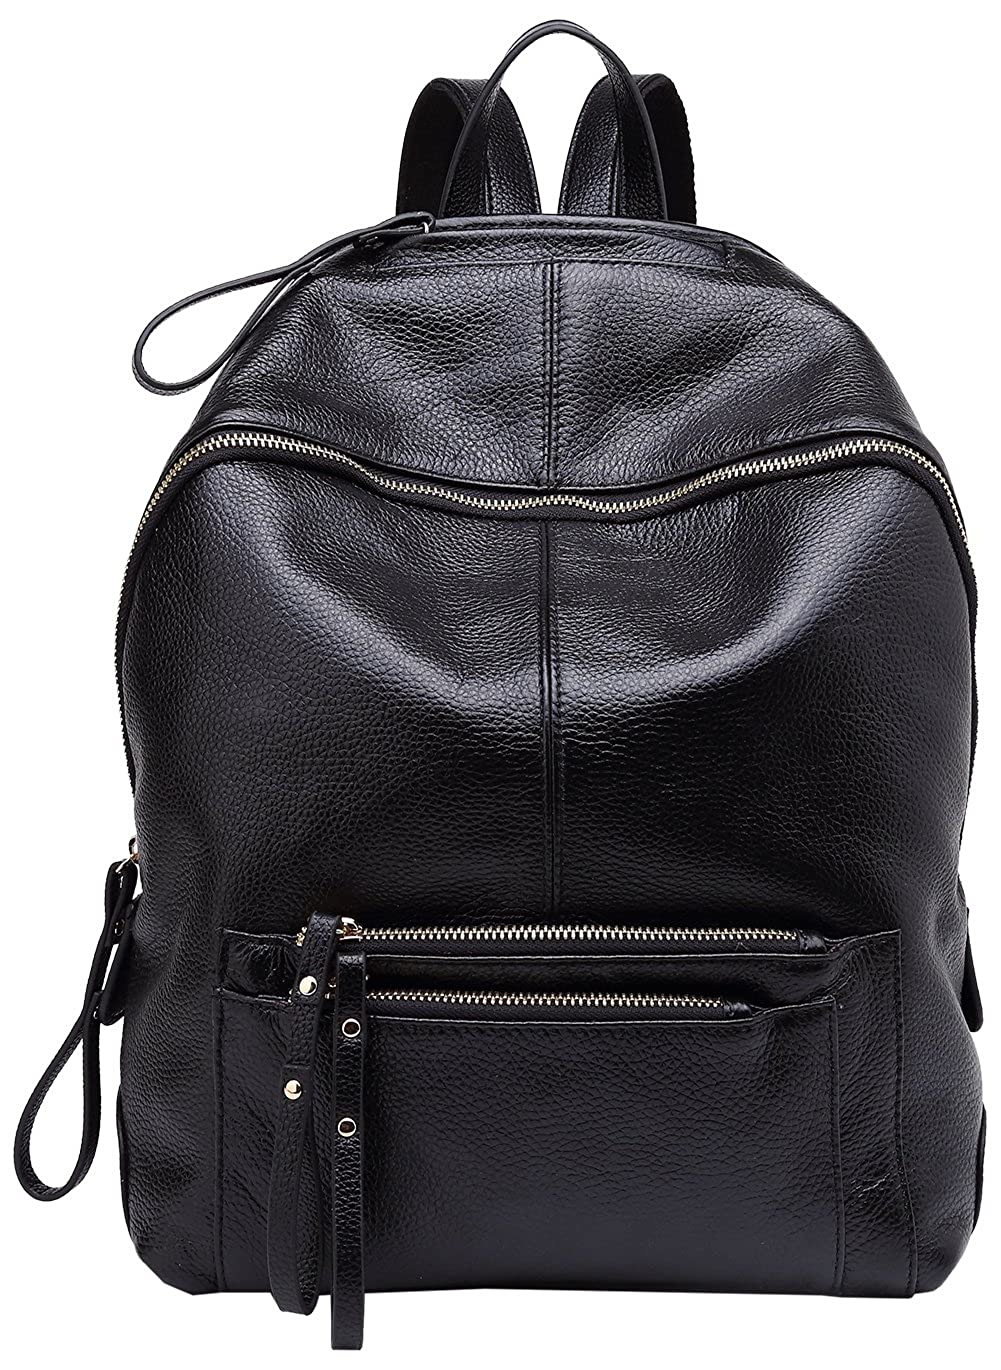 BOYATU Genuine Leather Backpack for Women Large Capacity Travel Bag Casual Purse 735181100